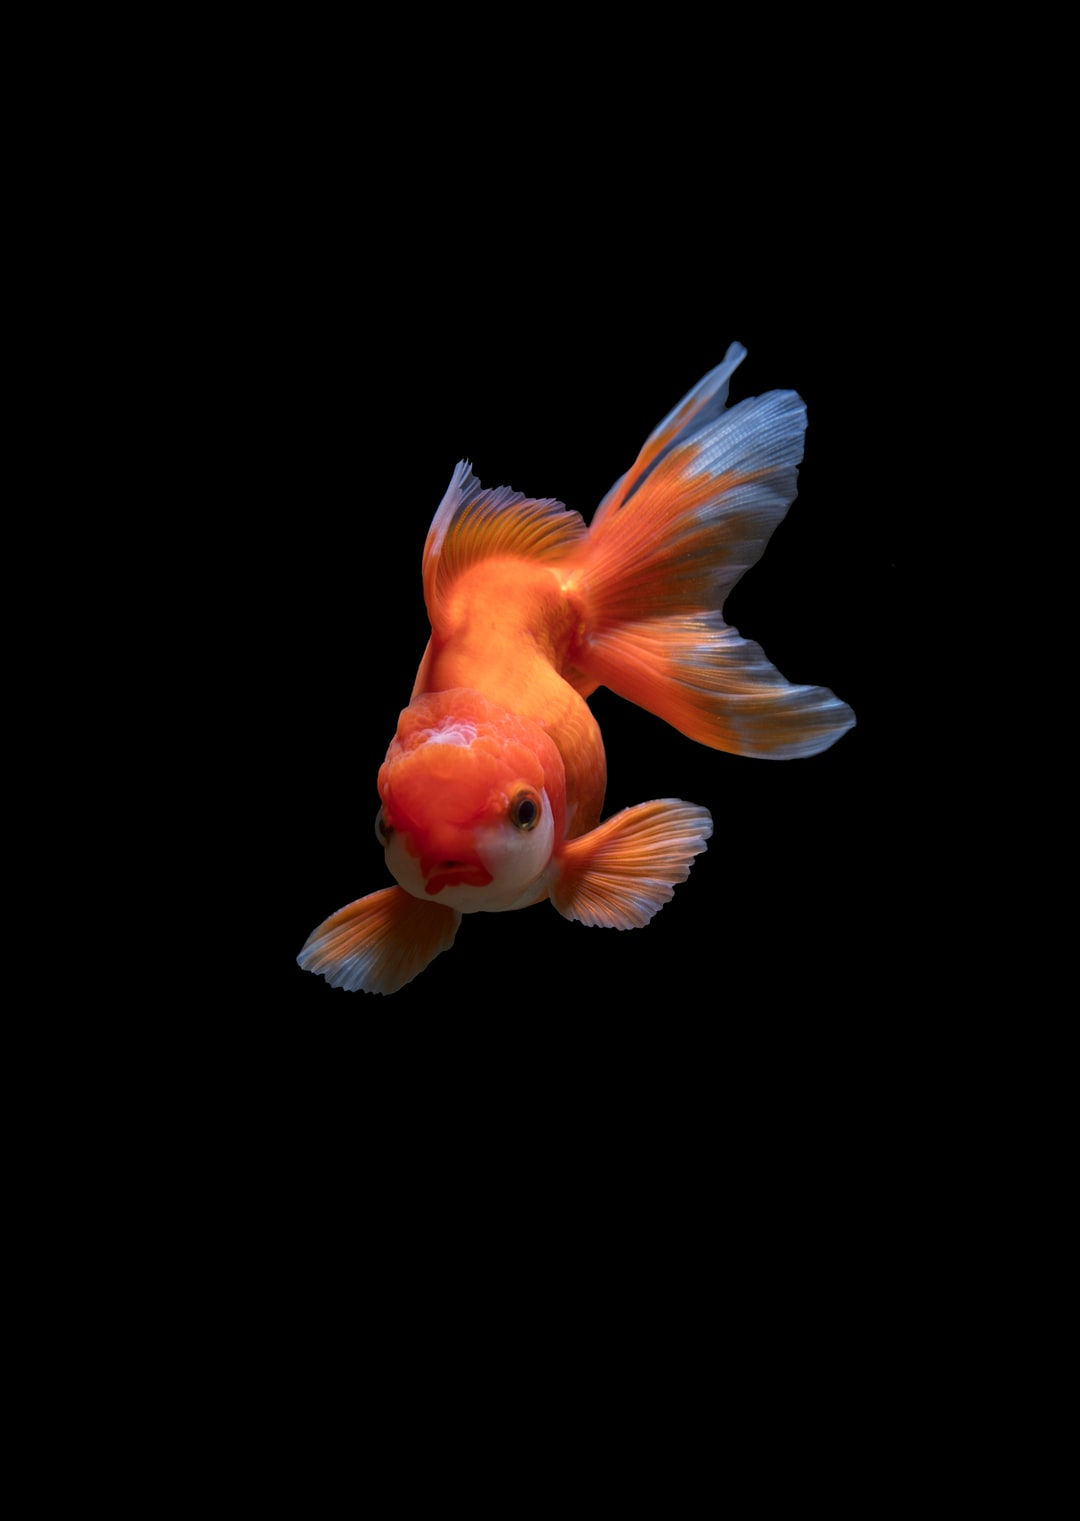 100+ Fish Images | Download Free Images & Stock Photos on